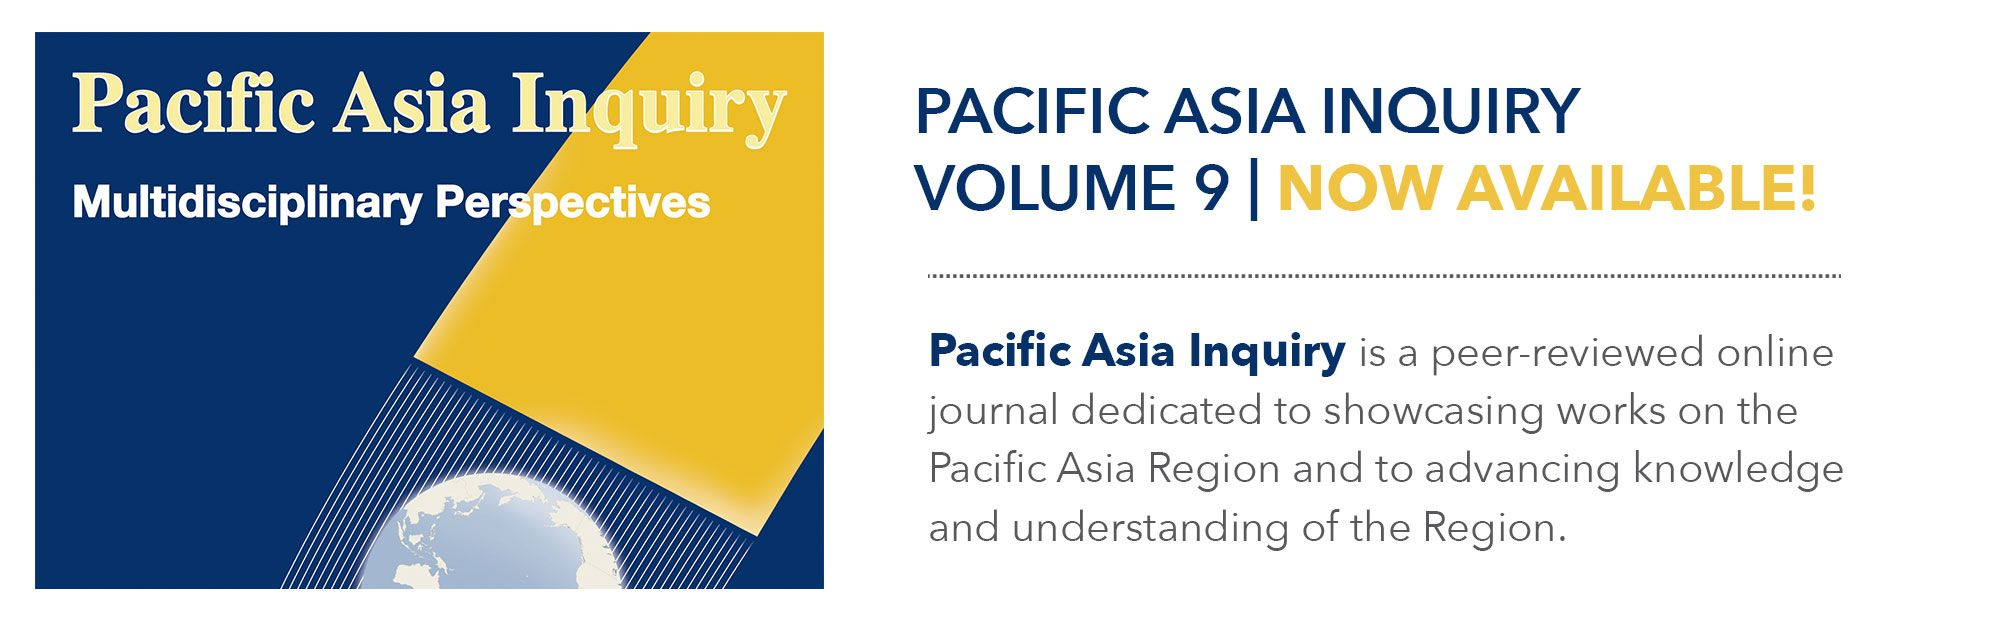 Pacific Asia Inquiry